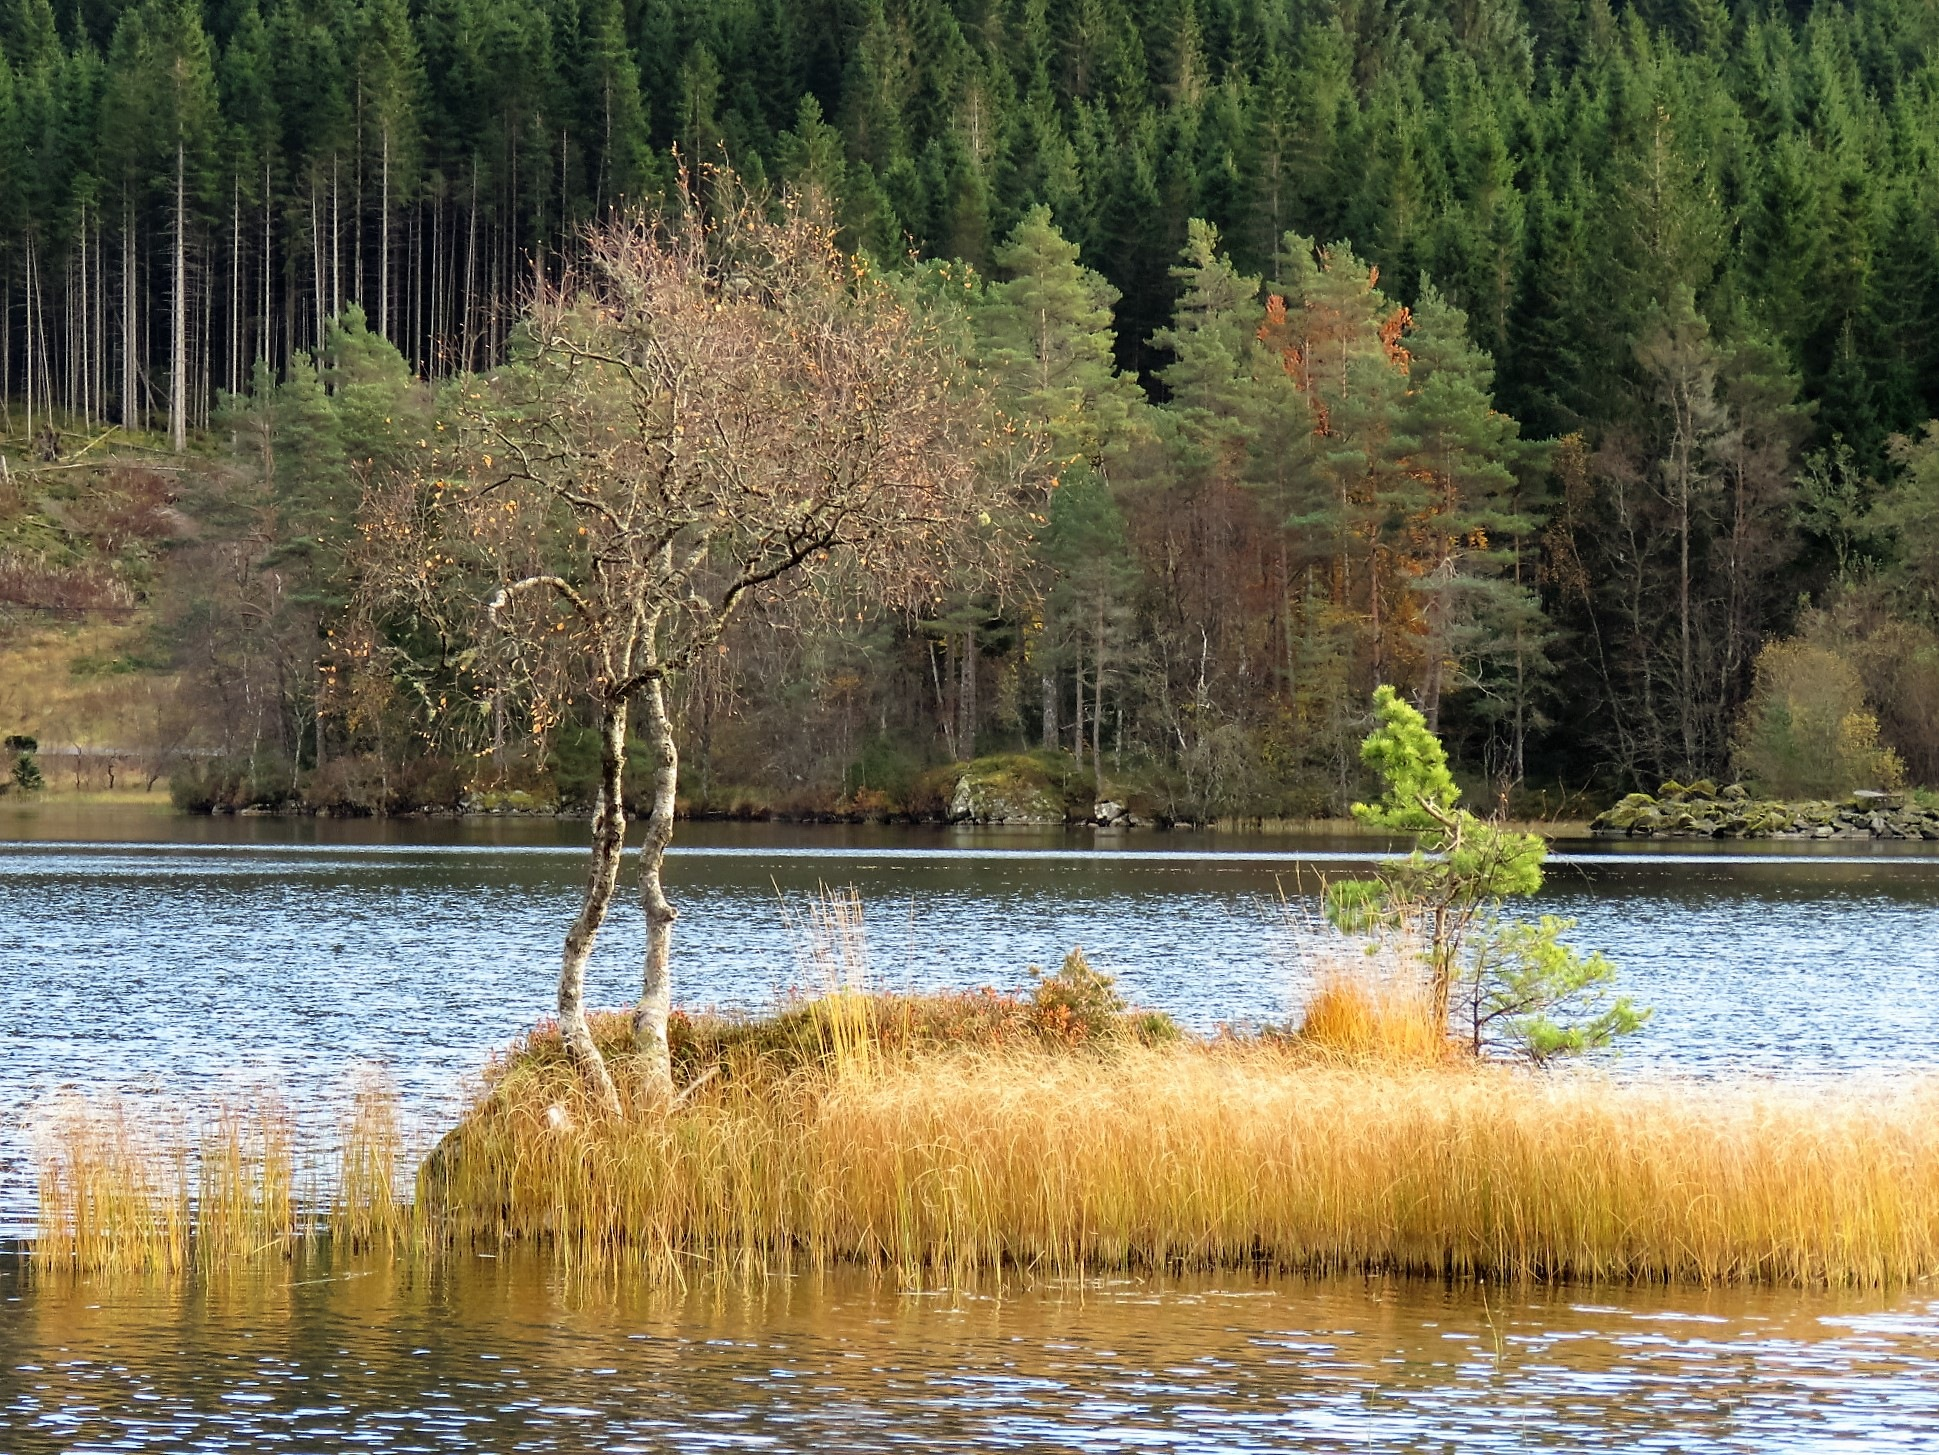 #Autumn by the lake by marit